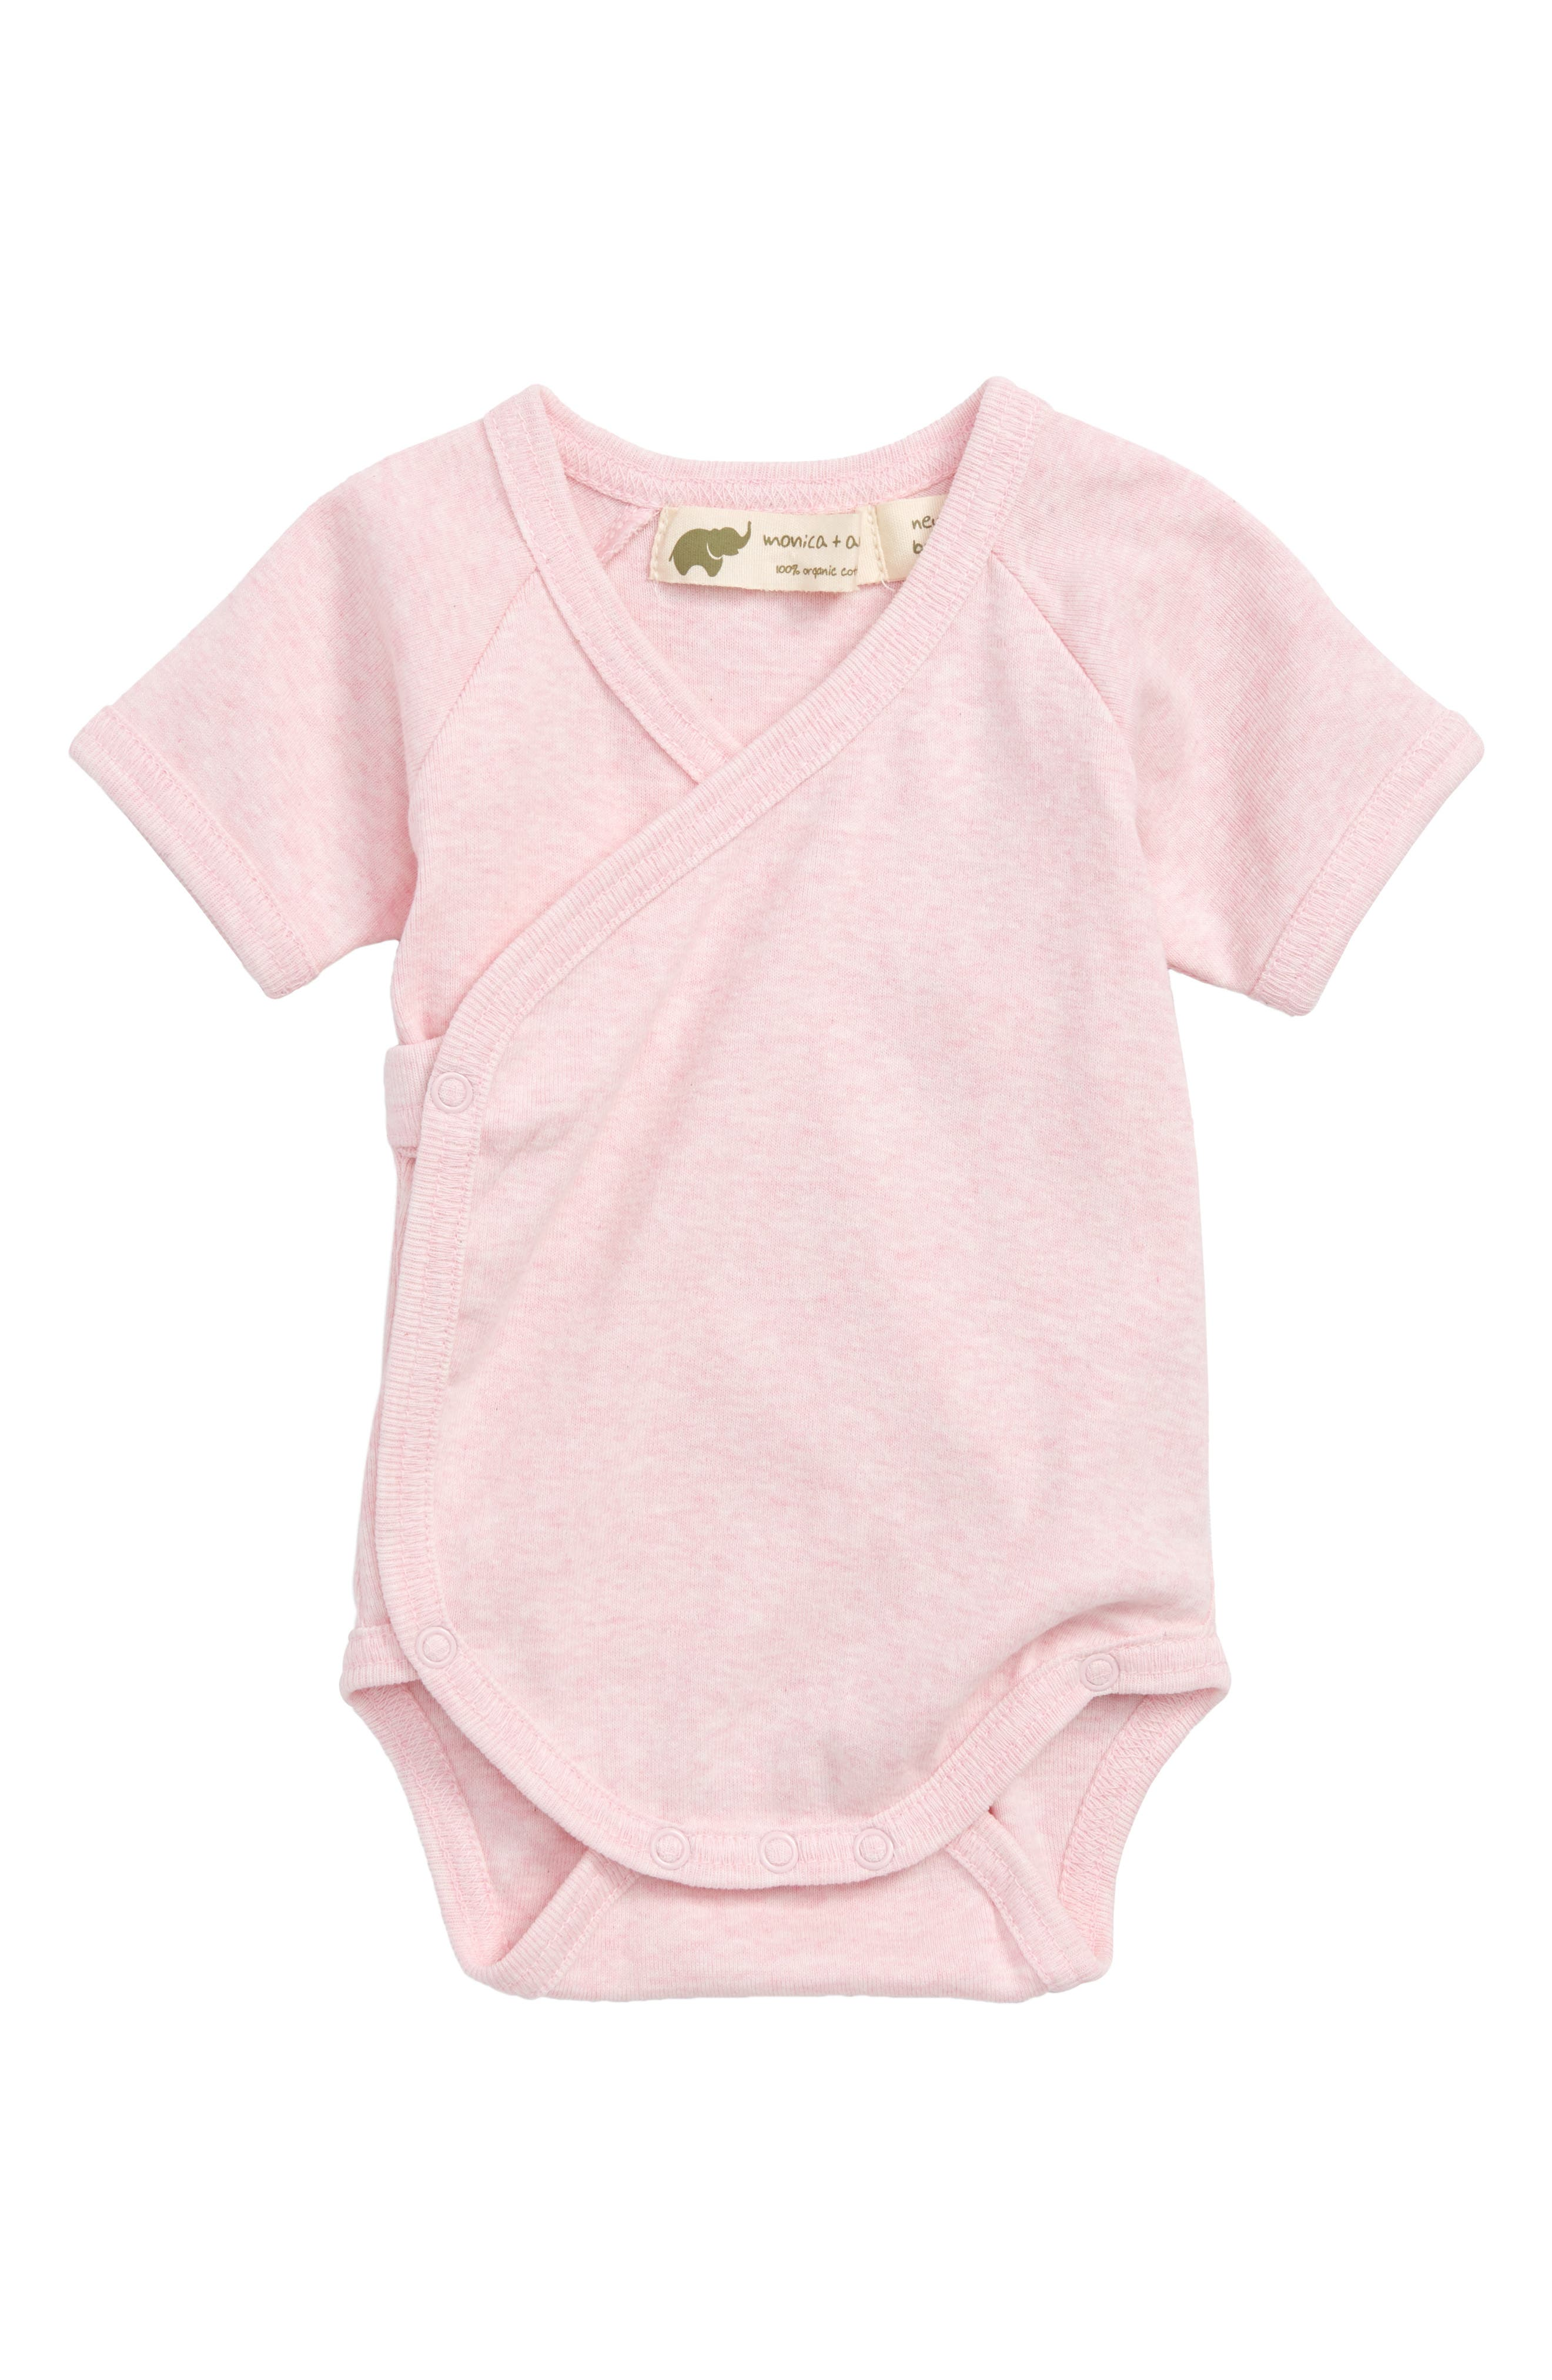 Monica + Andy Lucky Organic Cotton Wrap Bodysuit (Baby Girls)